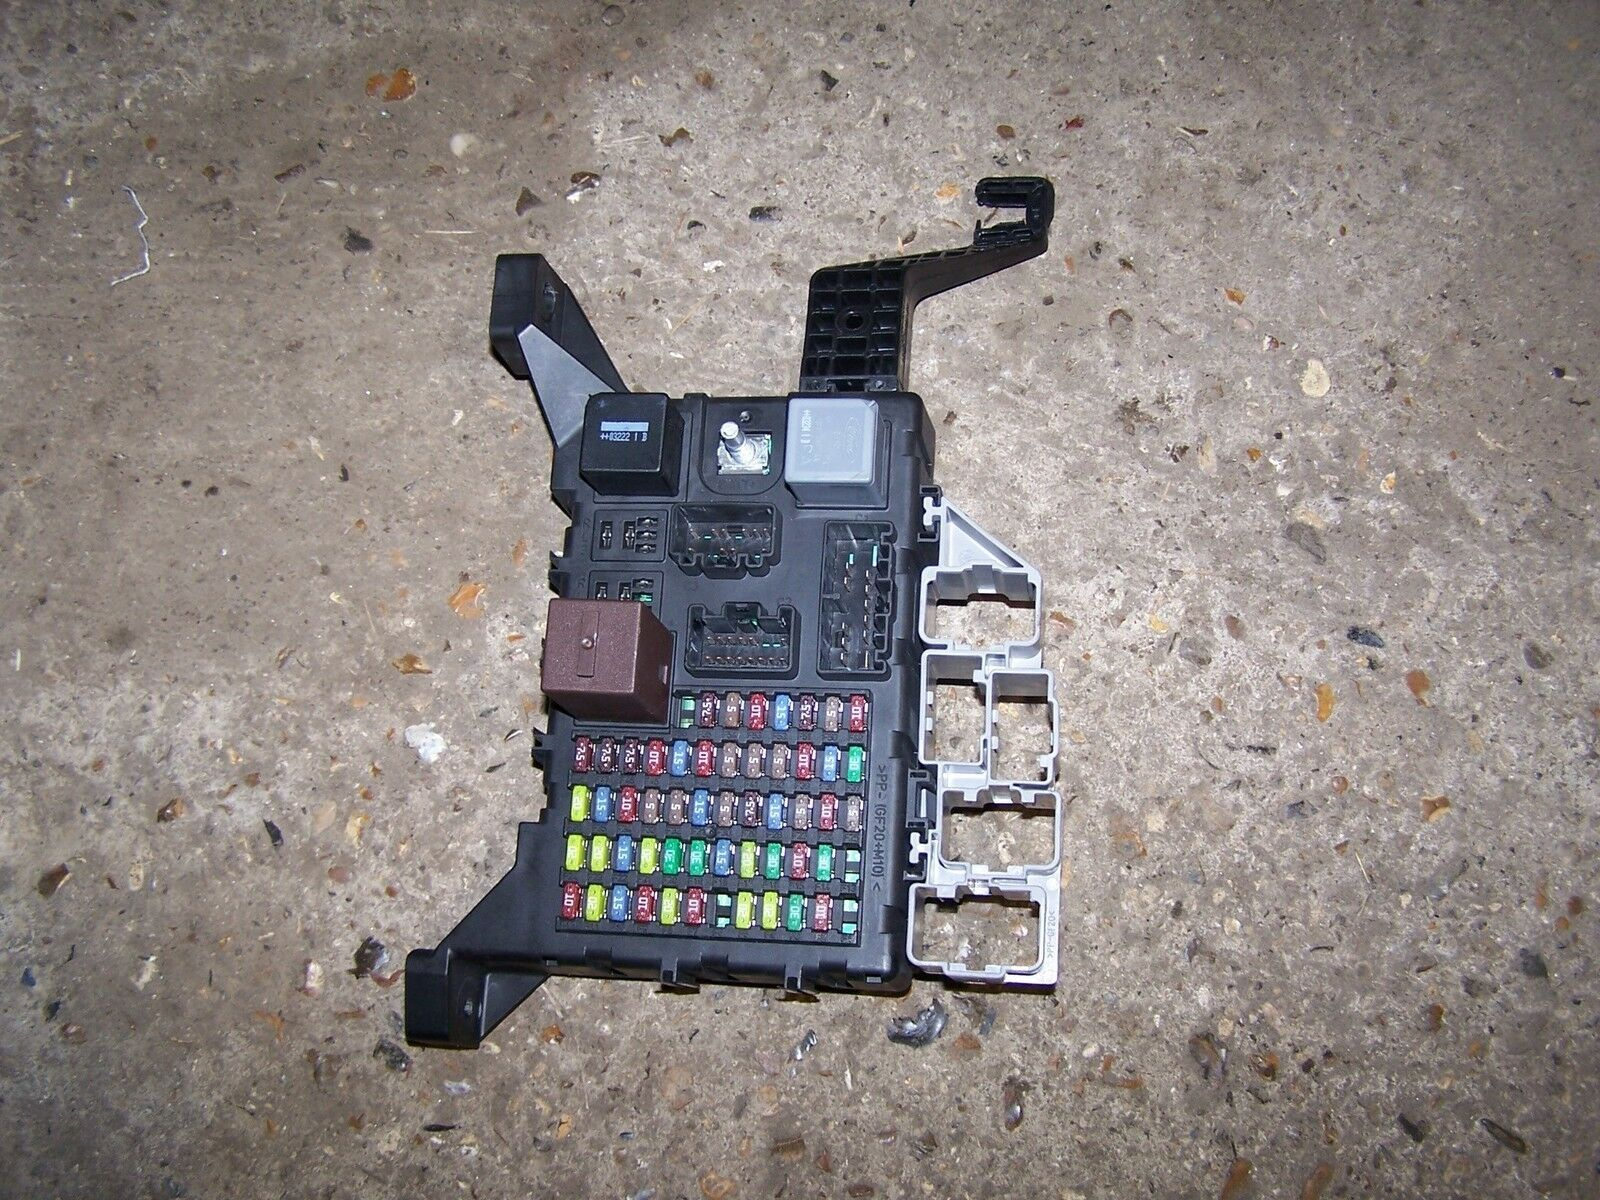 Fuse Box Under Dashboard Jaguar X Type 2.0 Diesel 1 of 1Only 1 available ...